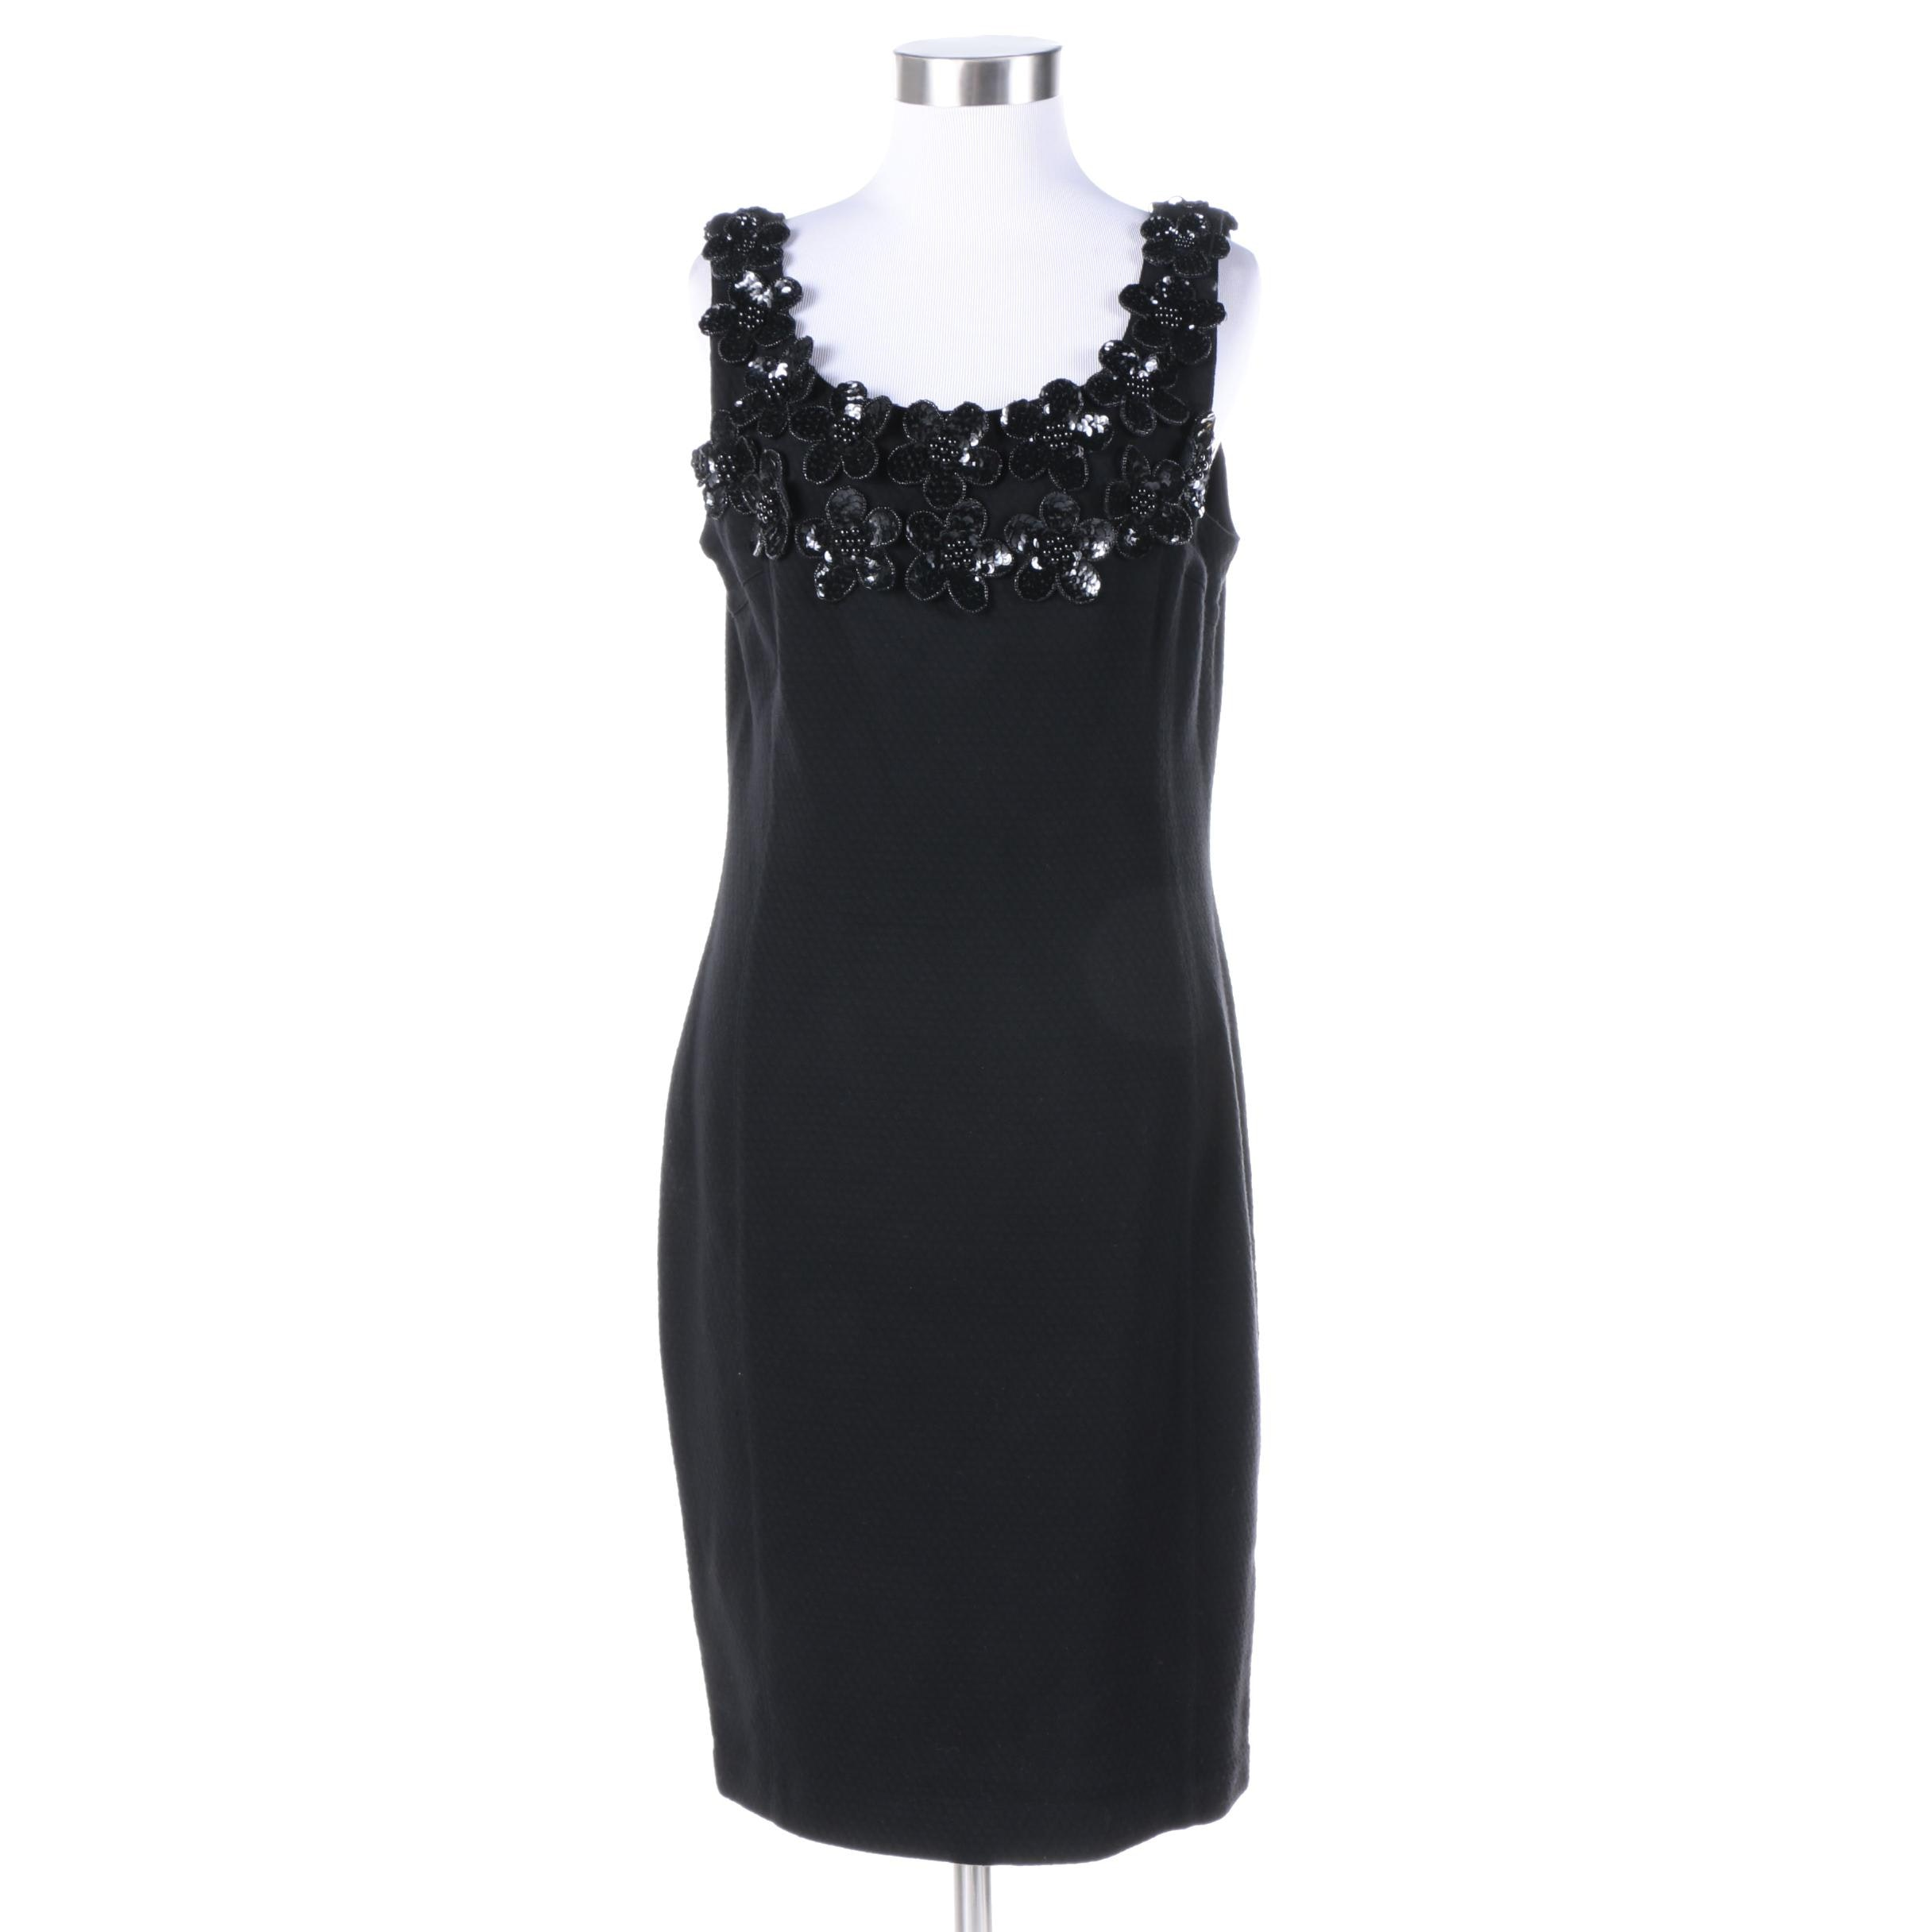 Adrienne Vittadini Black Dress with Beaded and Sequined Floral Appliqués